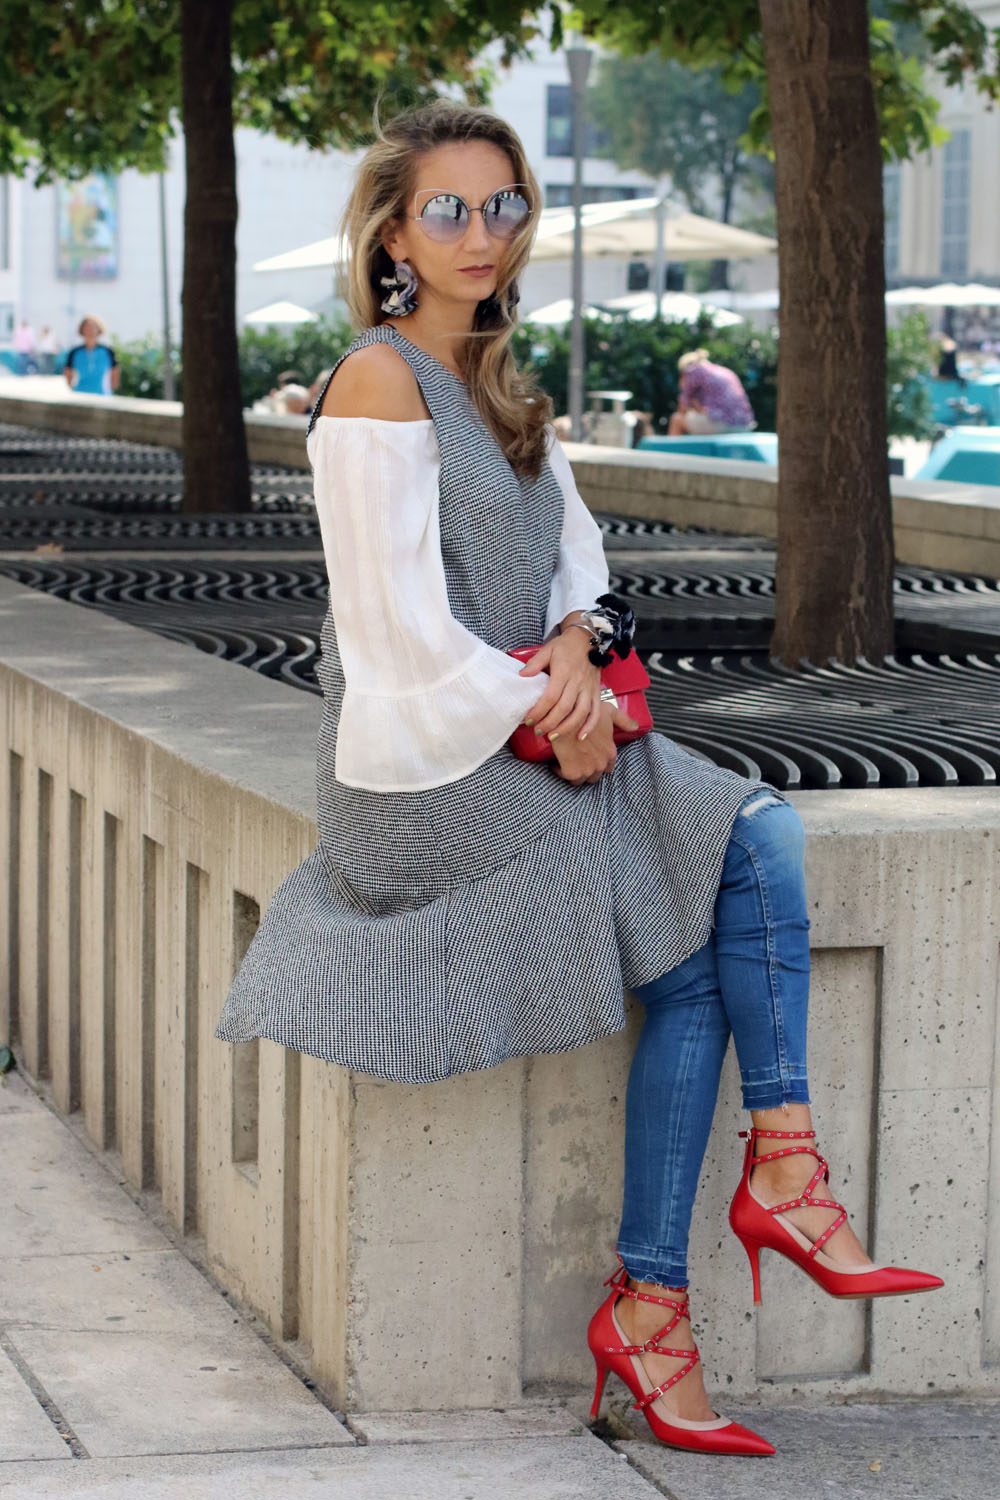 colourclub-fashion-blog-museums-quartier-vienna-valentino-pumps-furla-bag-off-shoulder-top-outfit-kleid-ueber-hose-bluejeans-skinny-jeans-lagenlook-marc-jacobs-sonnenbrille1